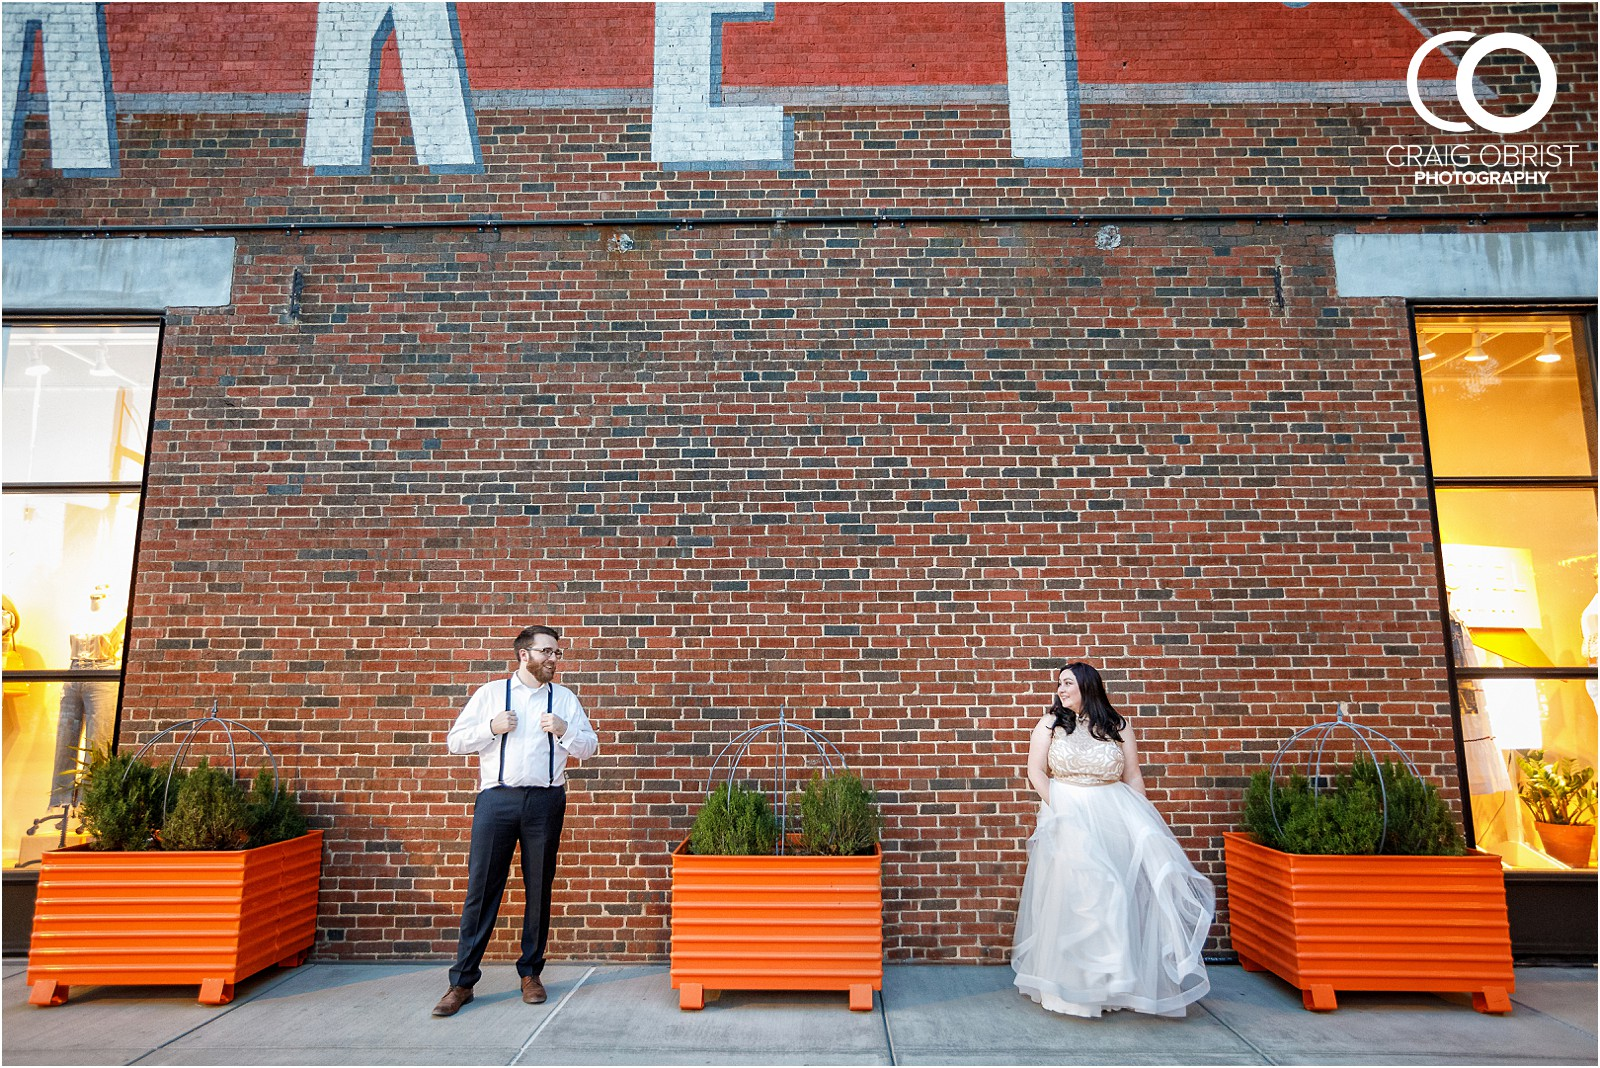 Ponce city markey Atlanta Beltline Piedmont Park engagement portraits_0021.jpg